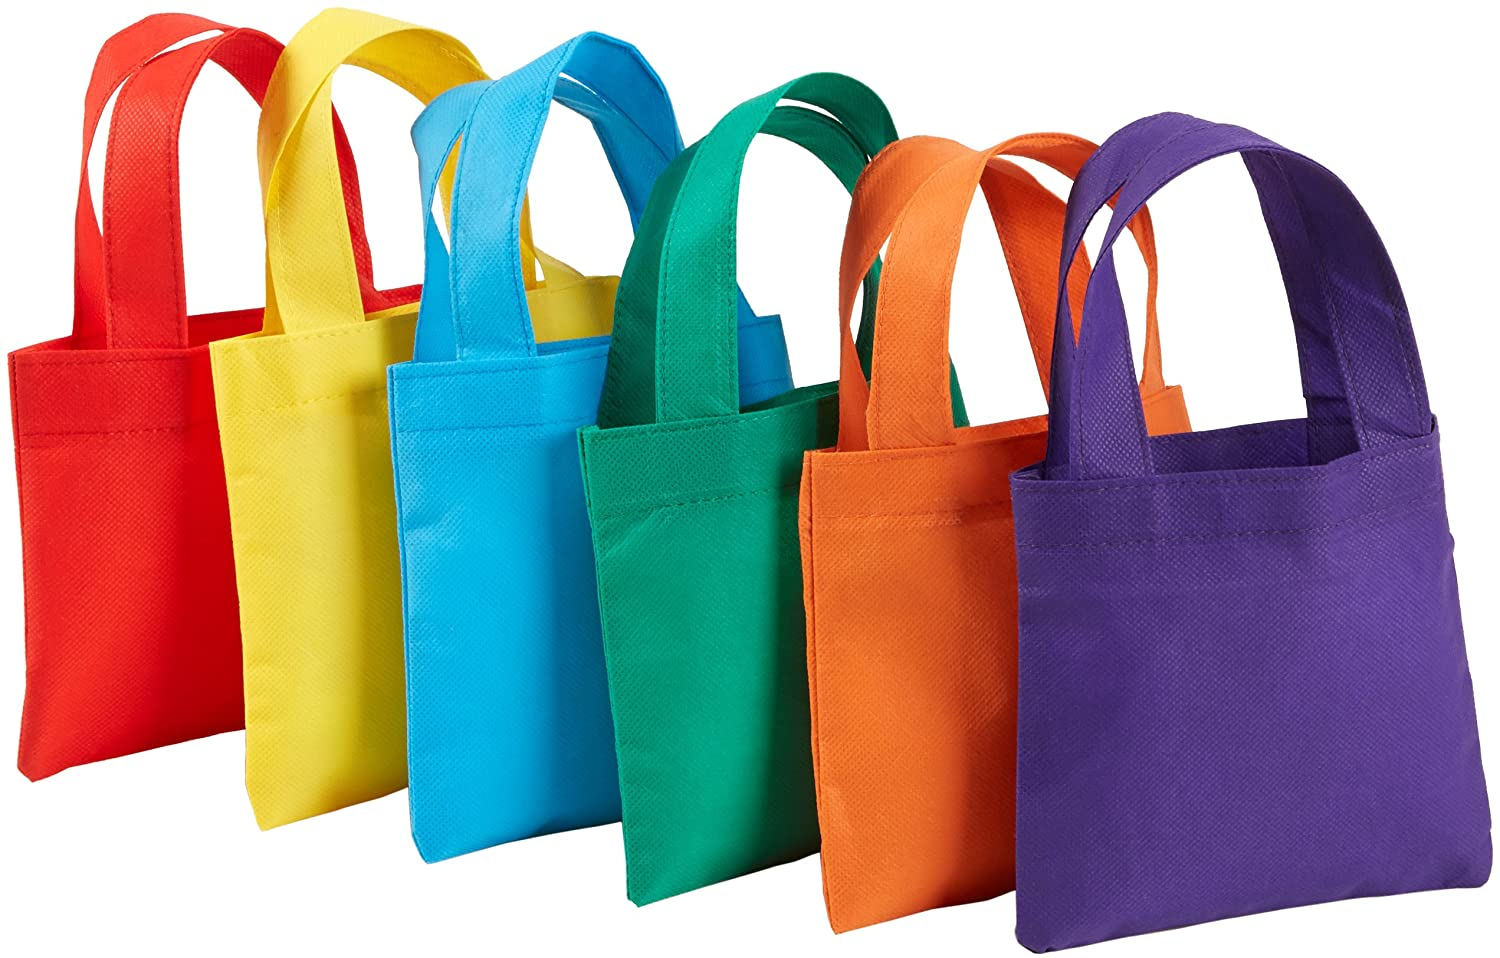 Buy Unique And Stylish Custom Reusable Grocery Bags In Bulk